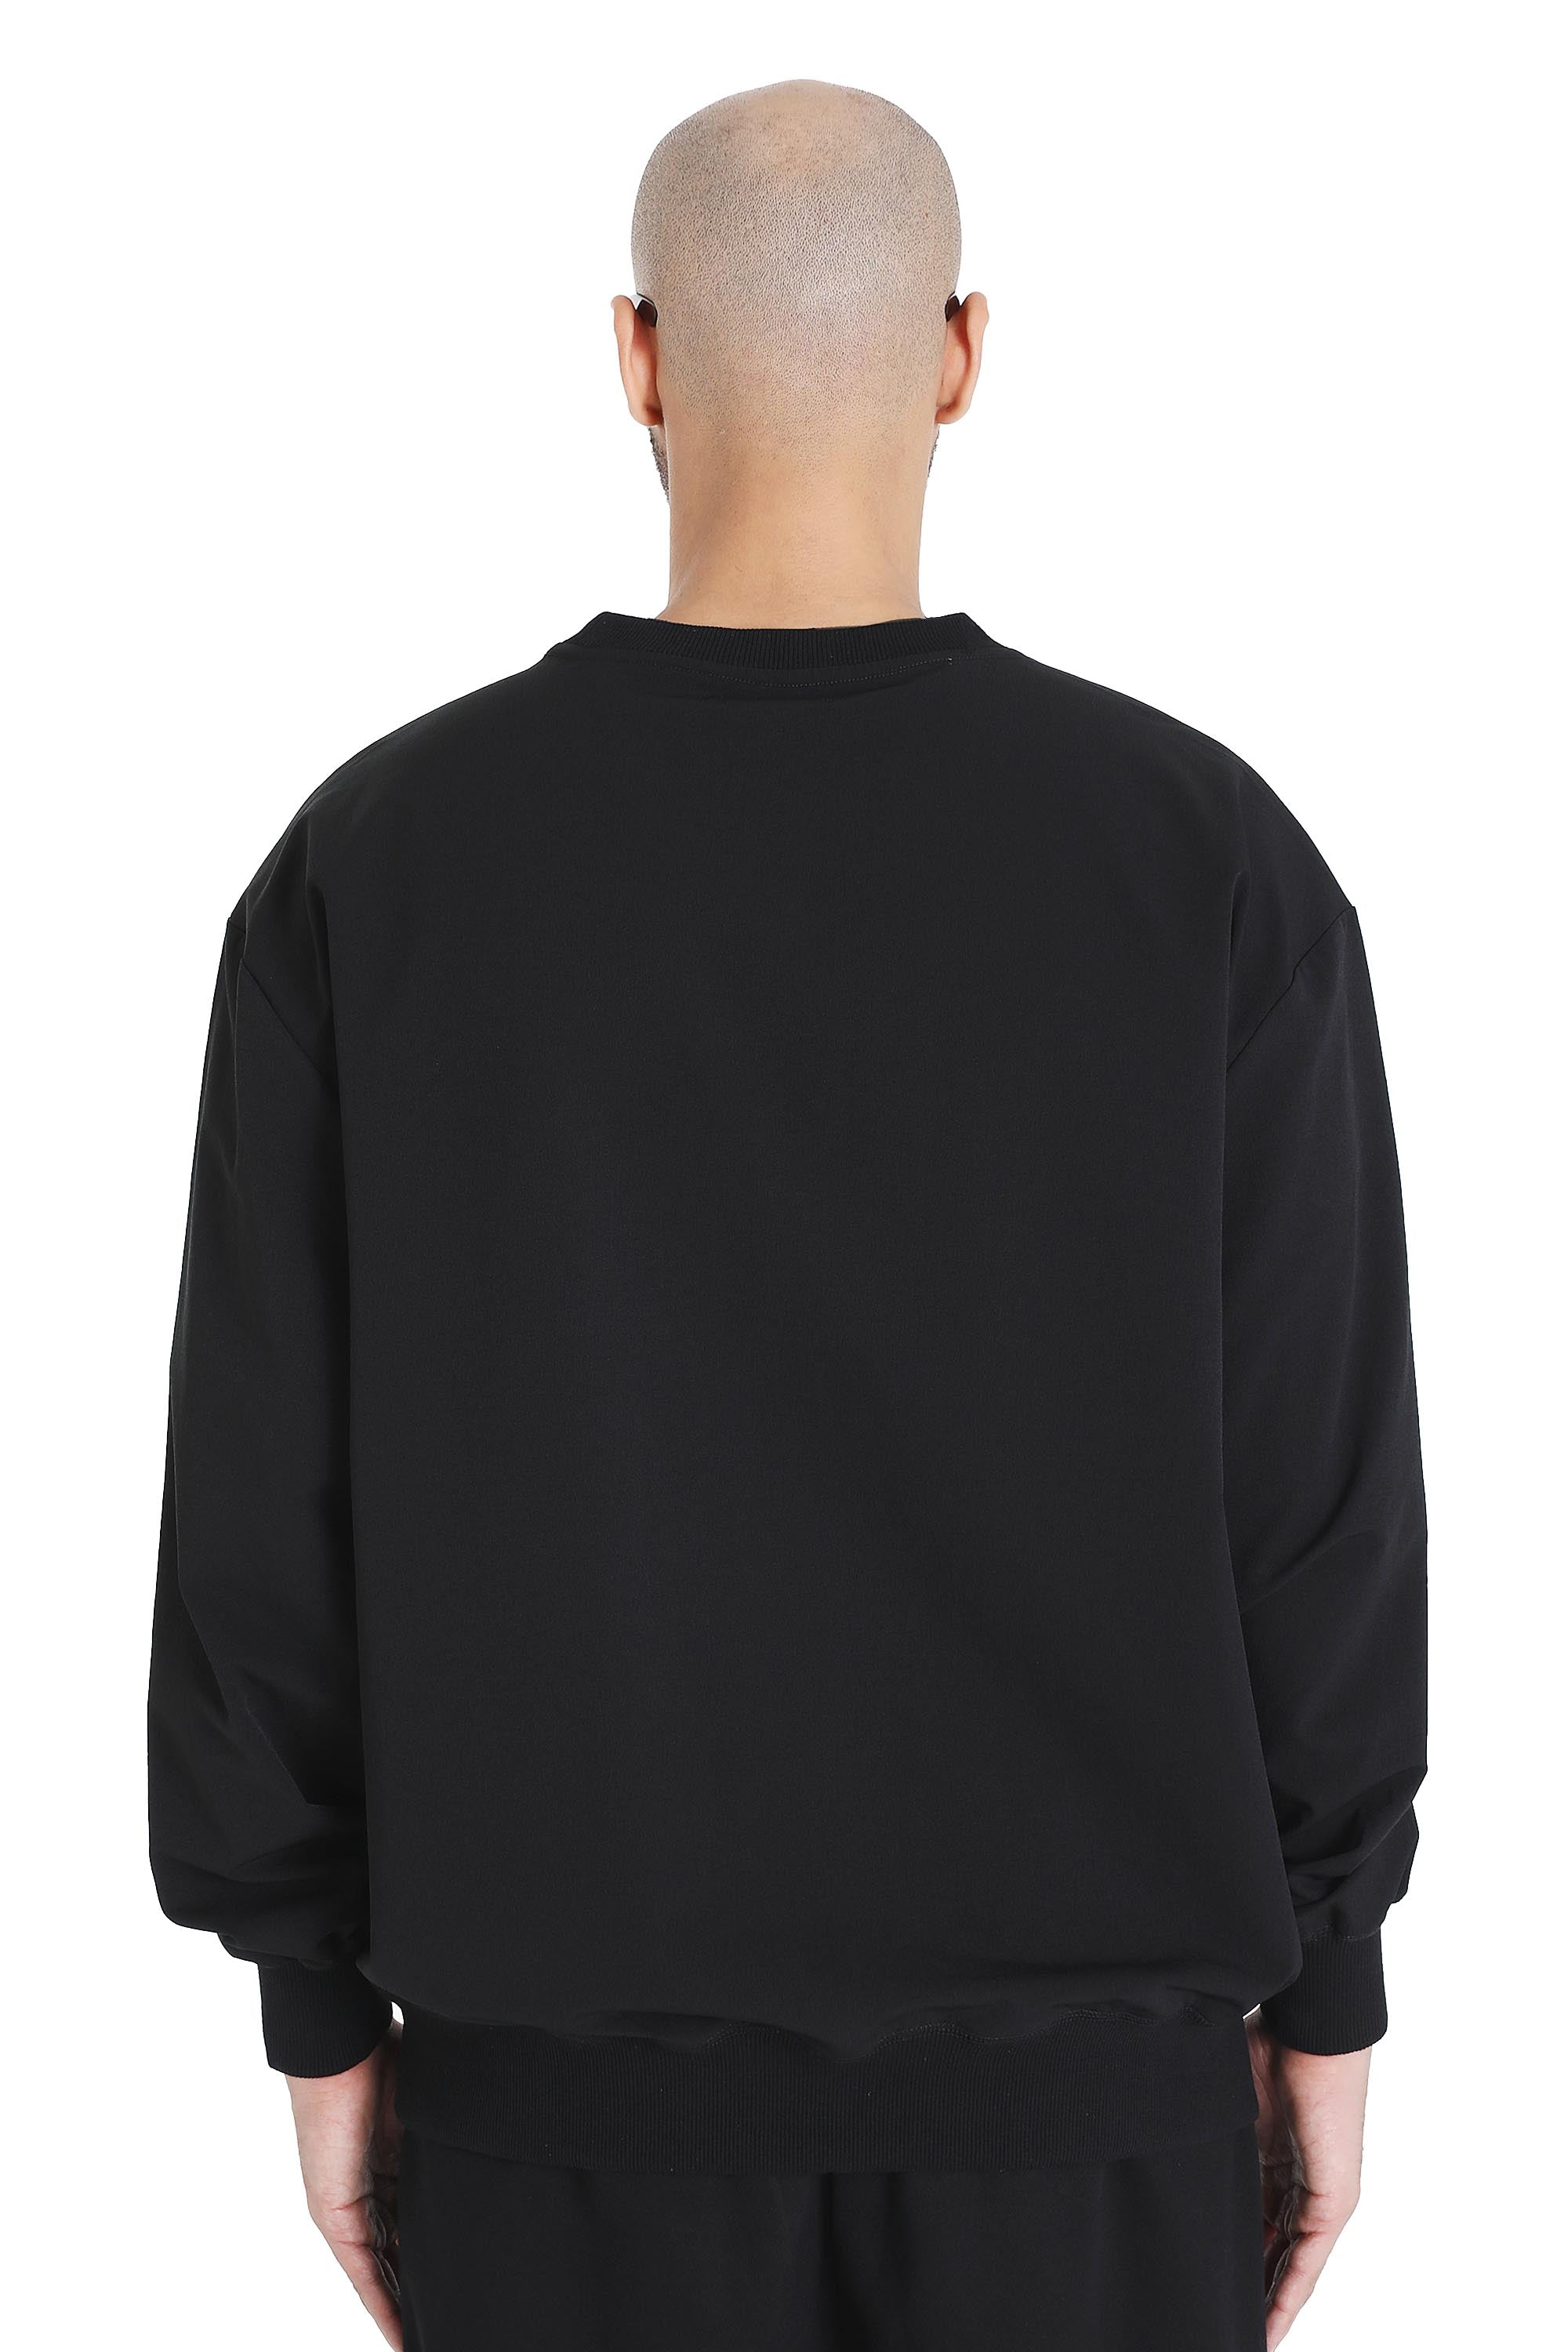 """ESSENTIAL"" SWEATER"